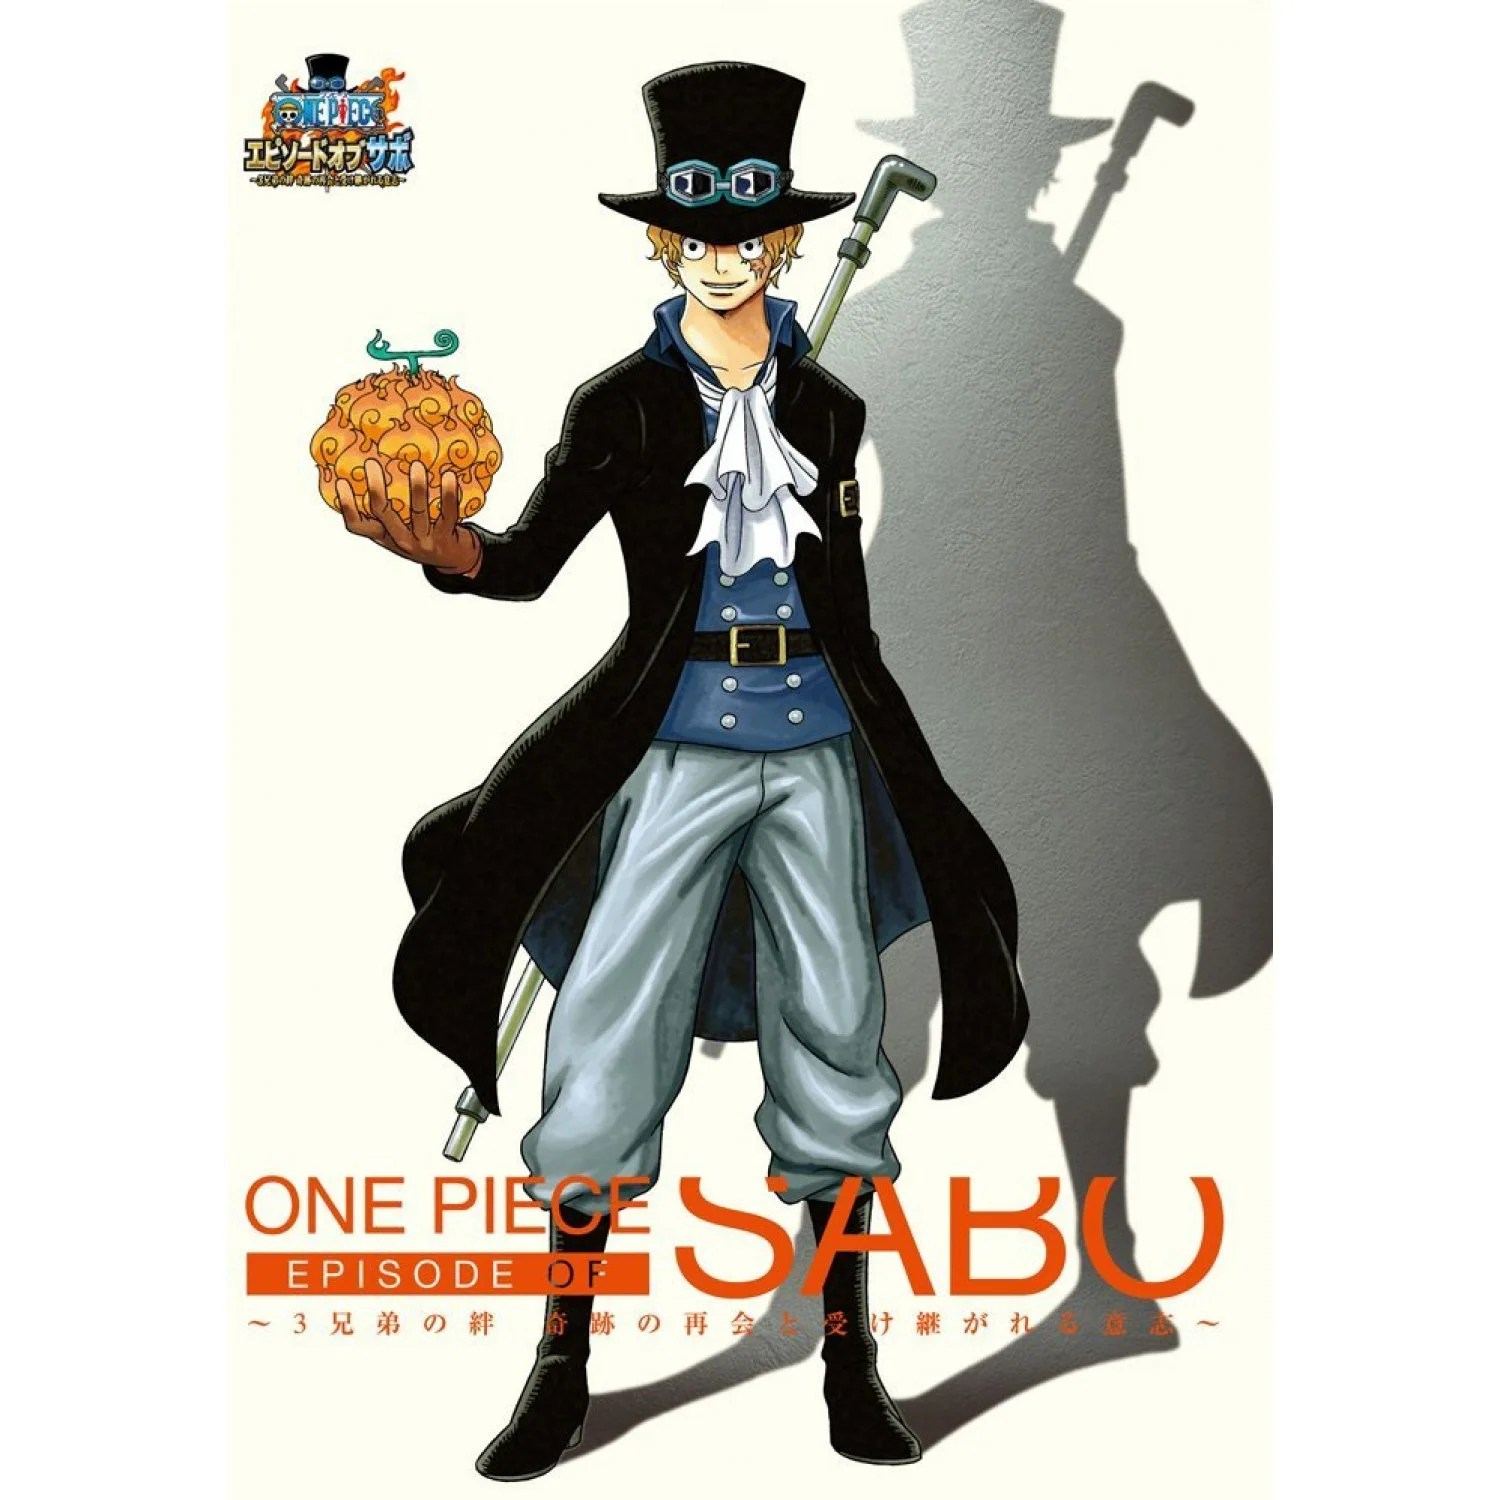 One Piece Episode Of Sabo The Three Brothers Bond